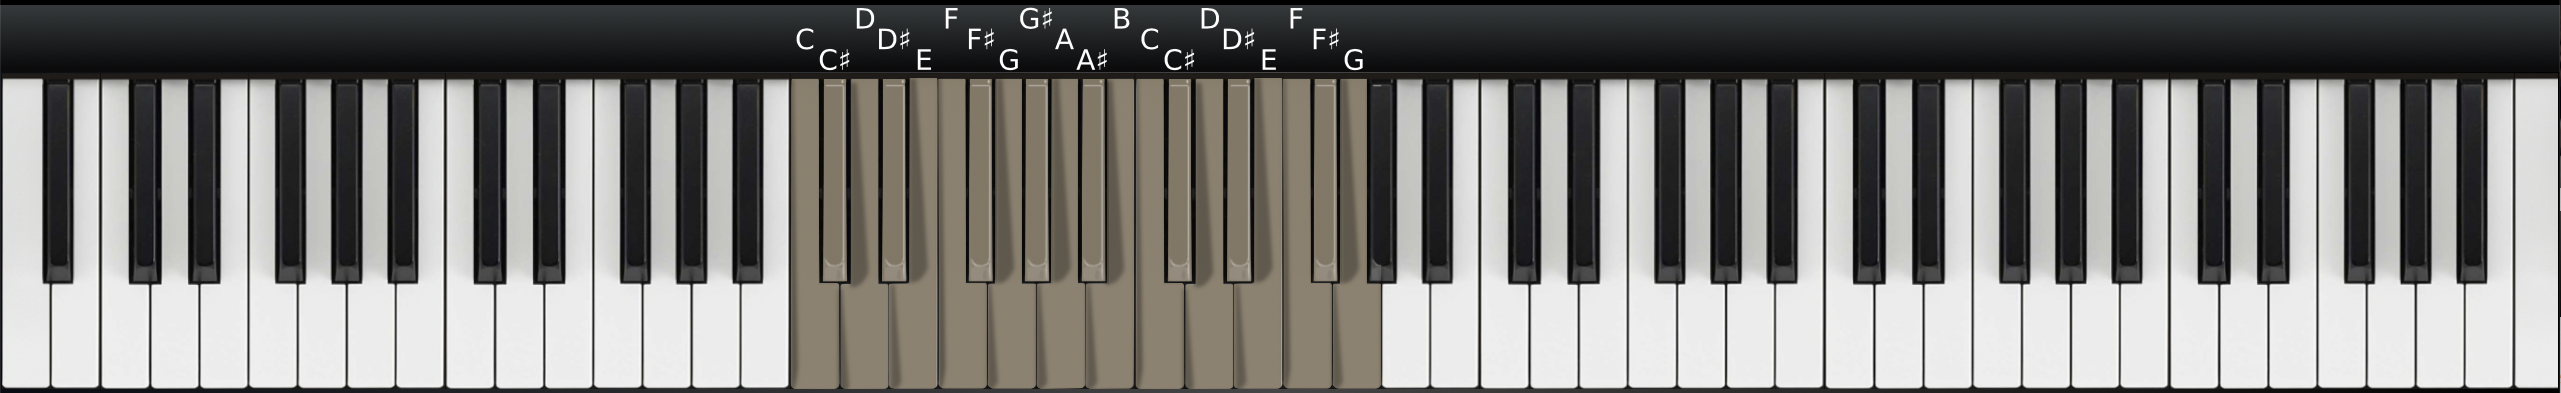 Stride Piano LH After-chord range